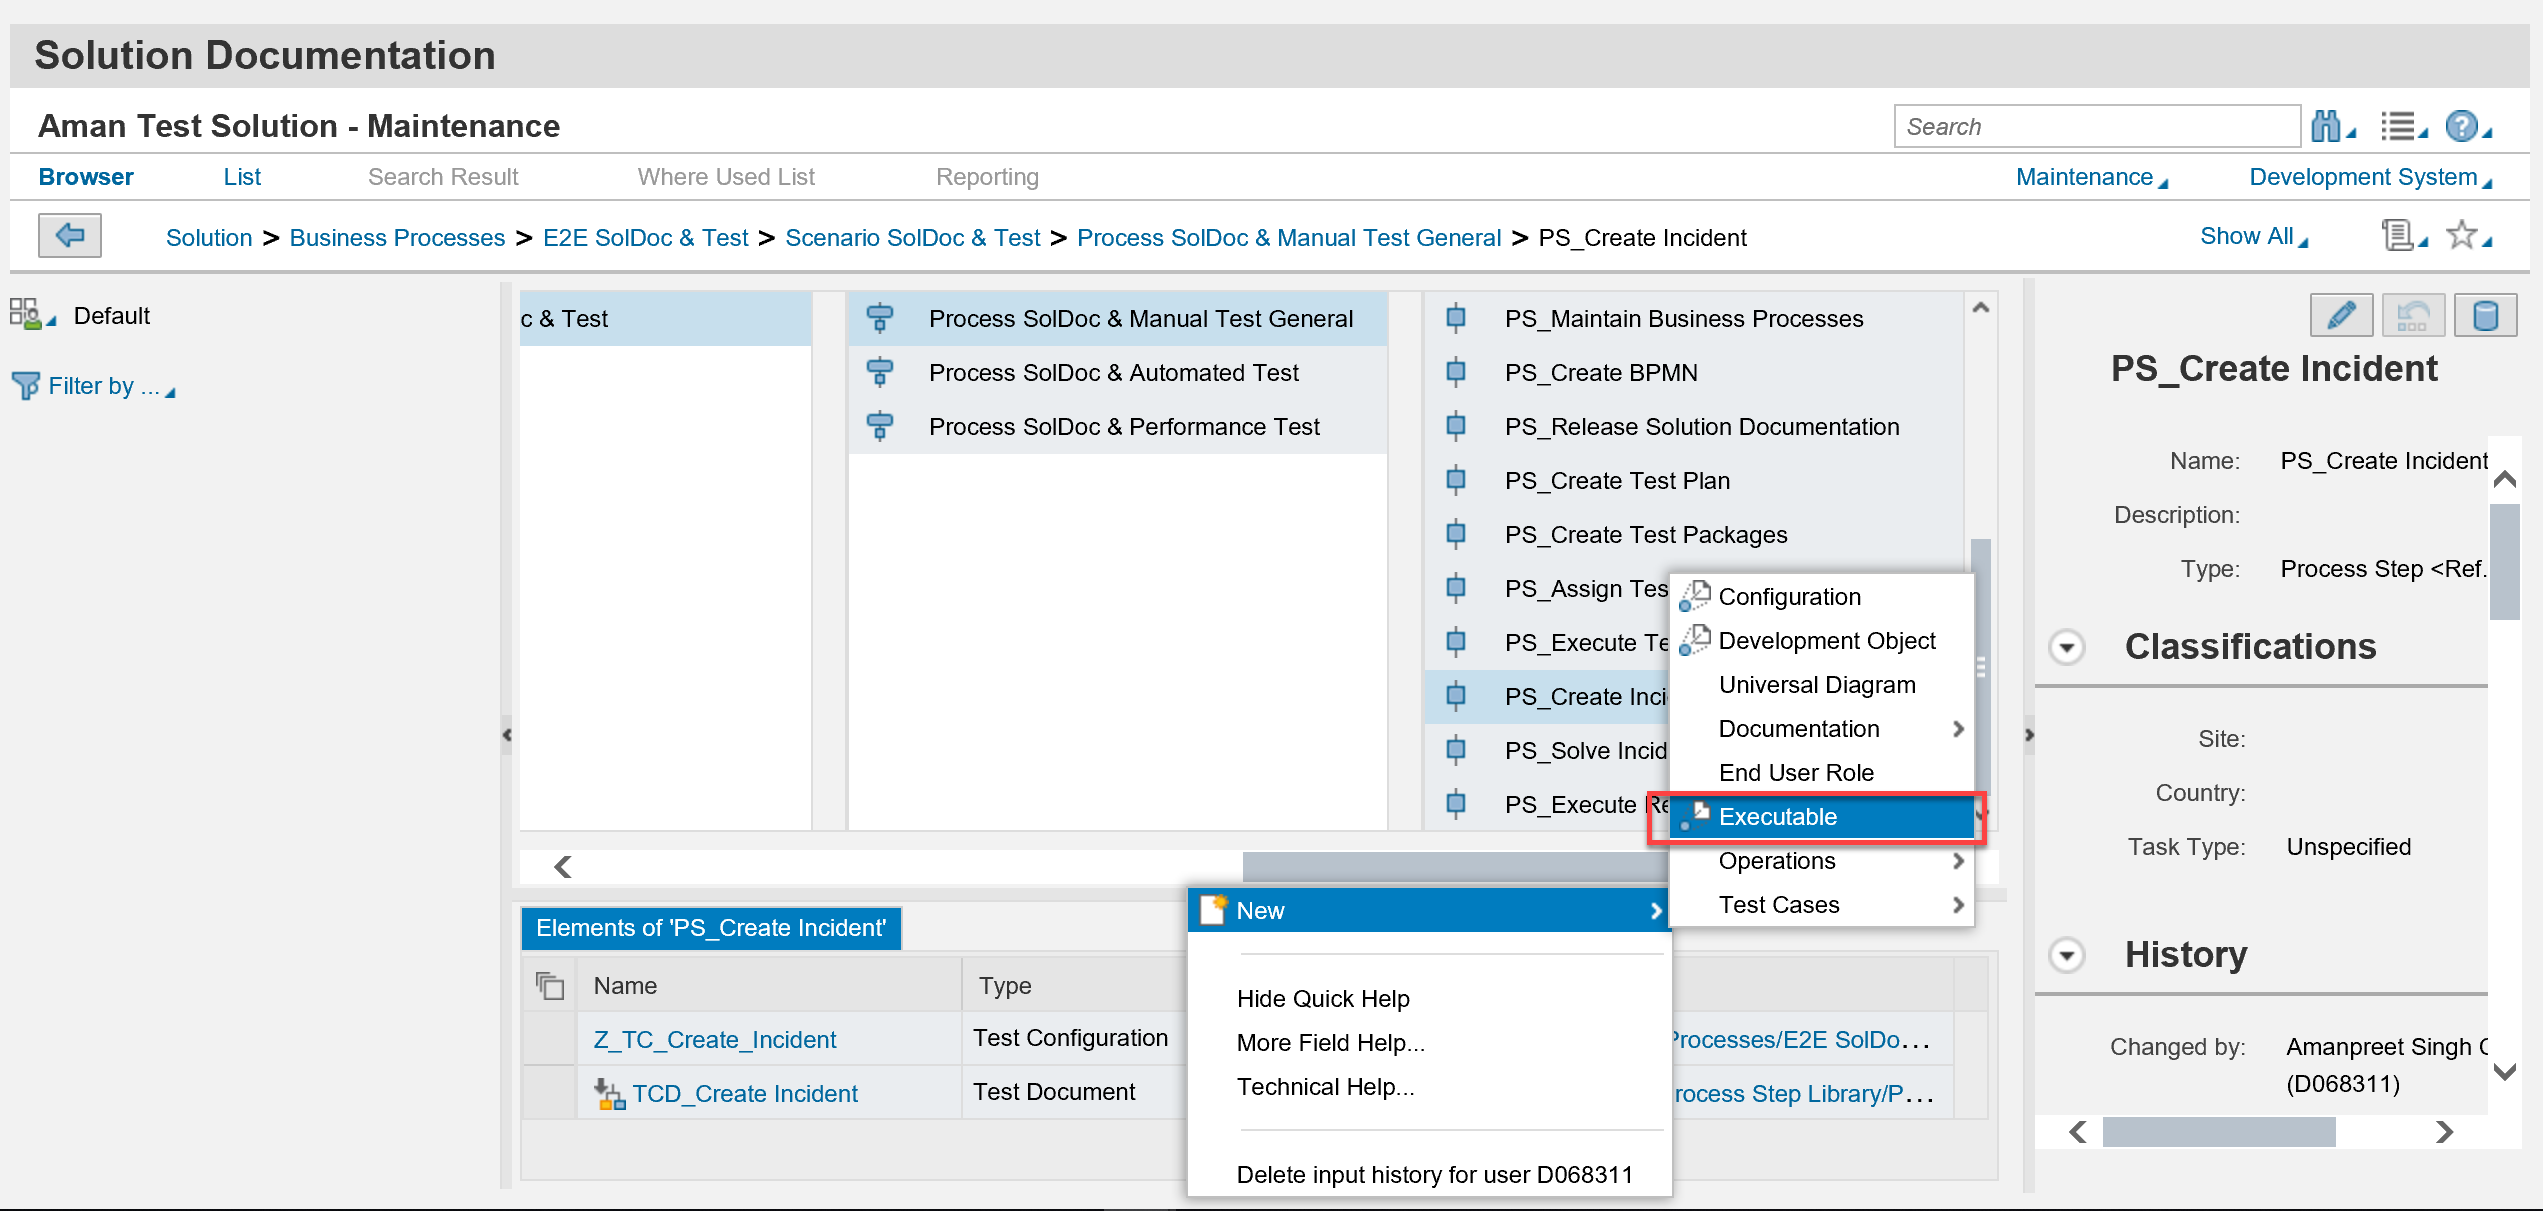 sap fiori application create incident image